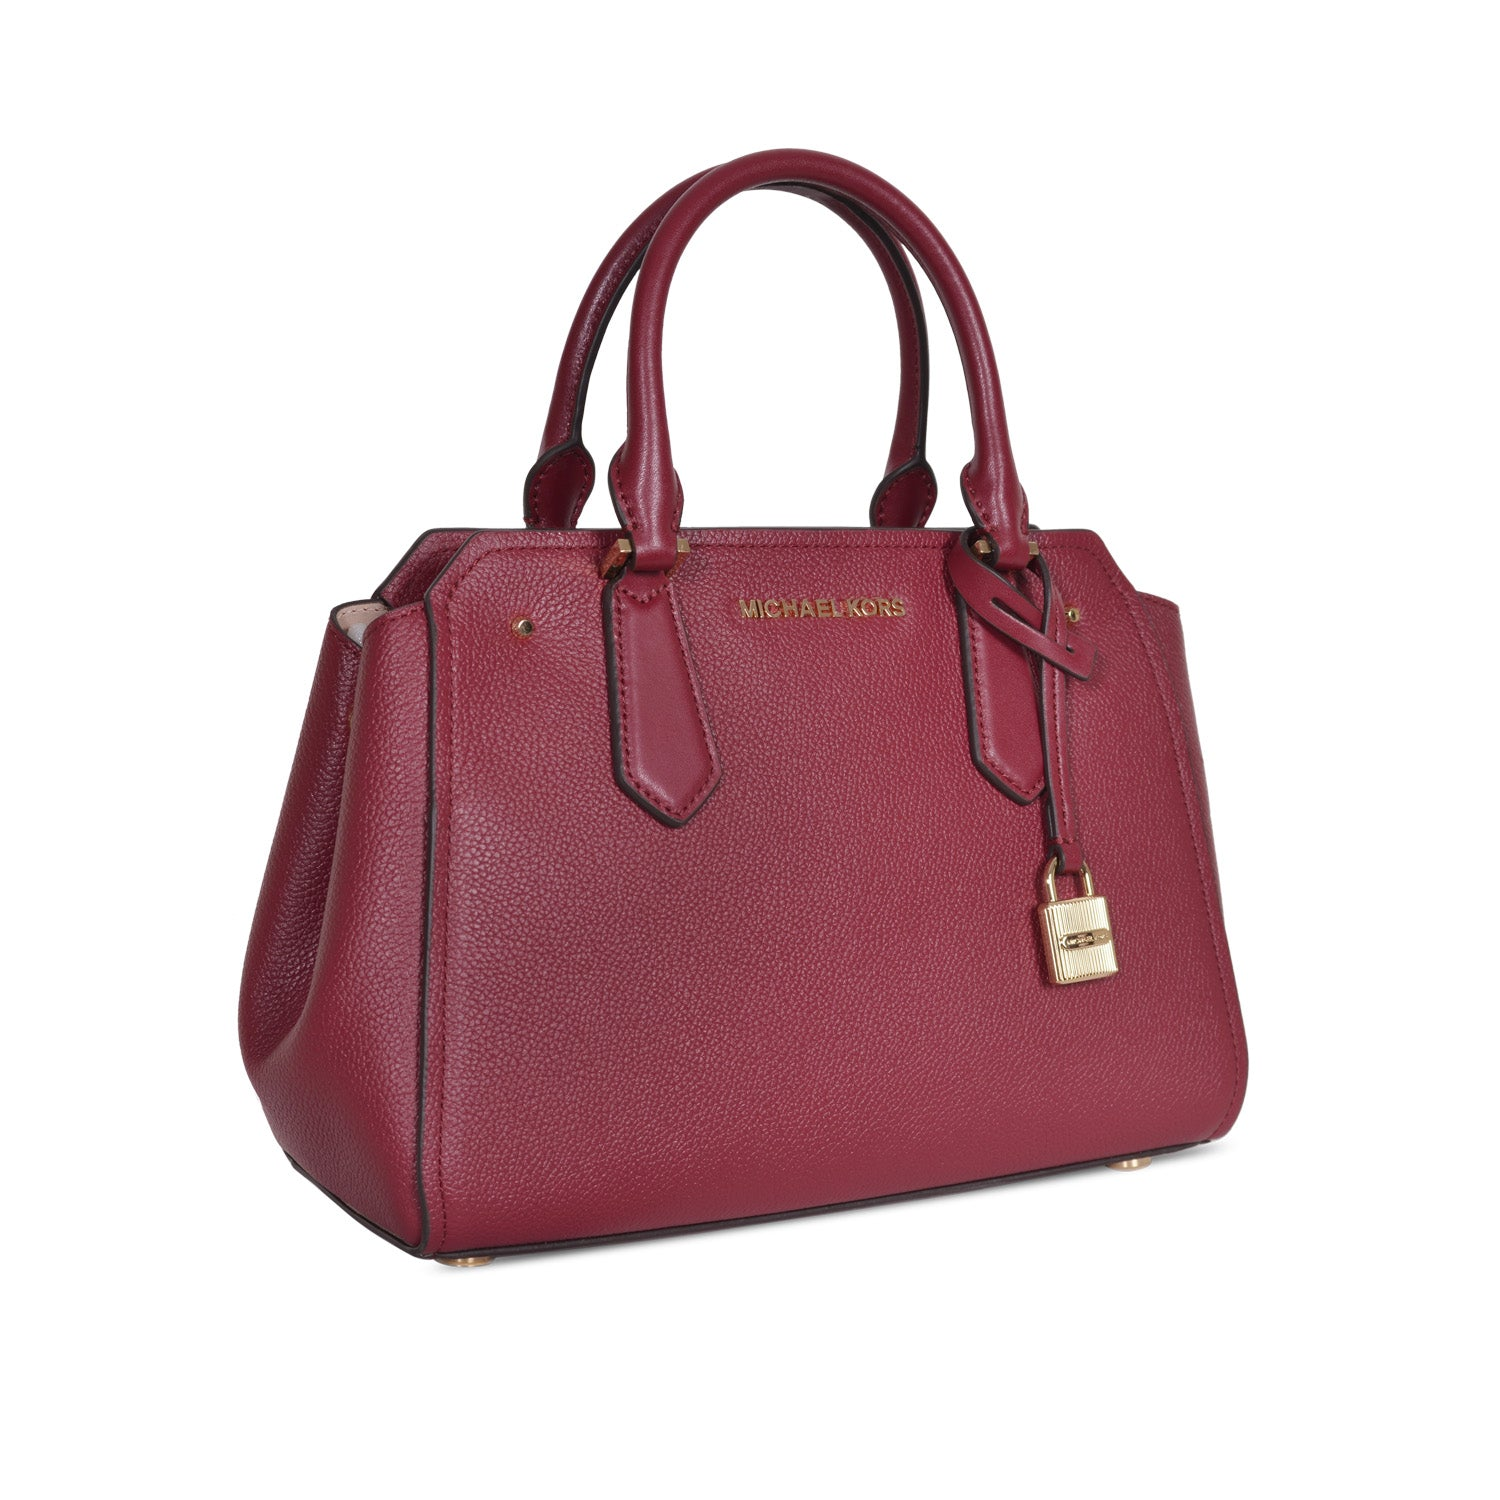 9ccc1239ba48 MICHAEL KORS HAYES LARGE MULBERRY LEATHER SHOULDER BAG – Galleria di Lux